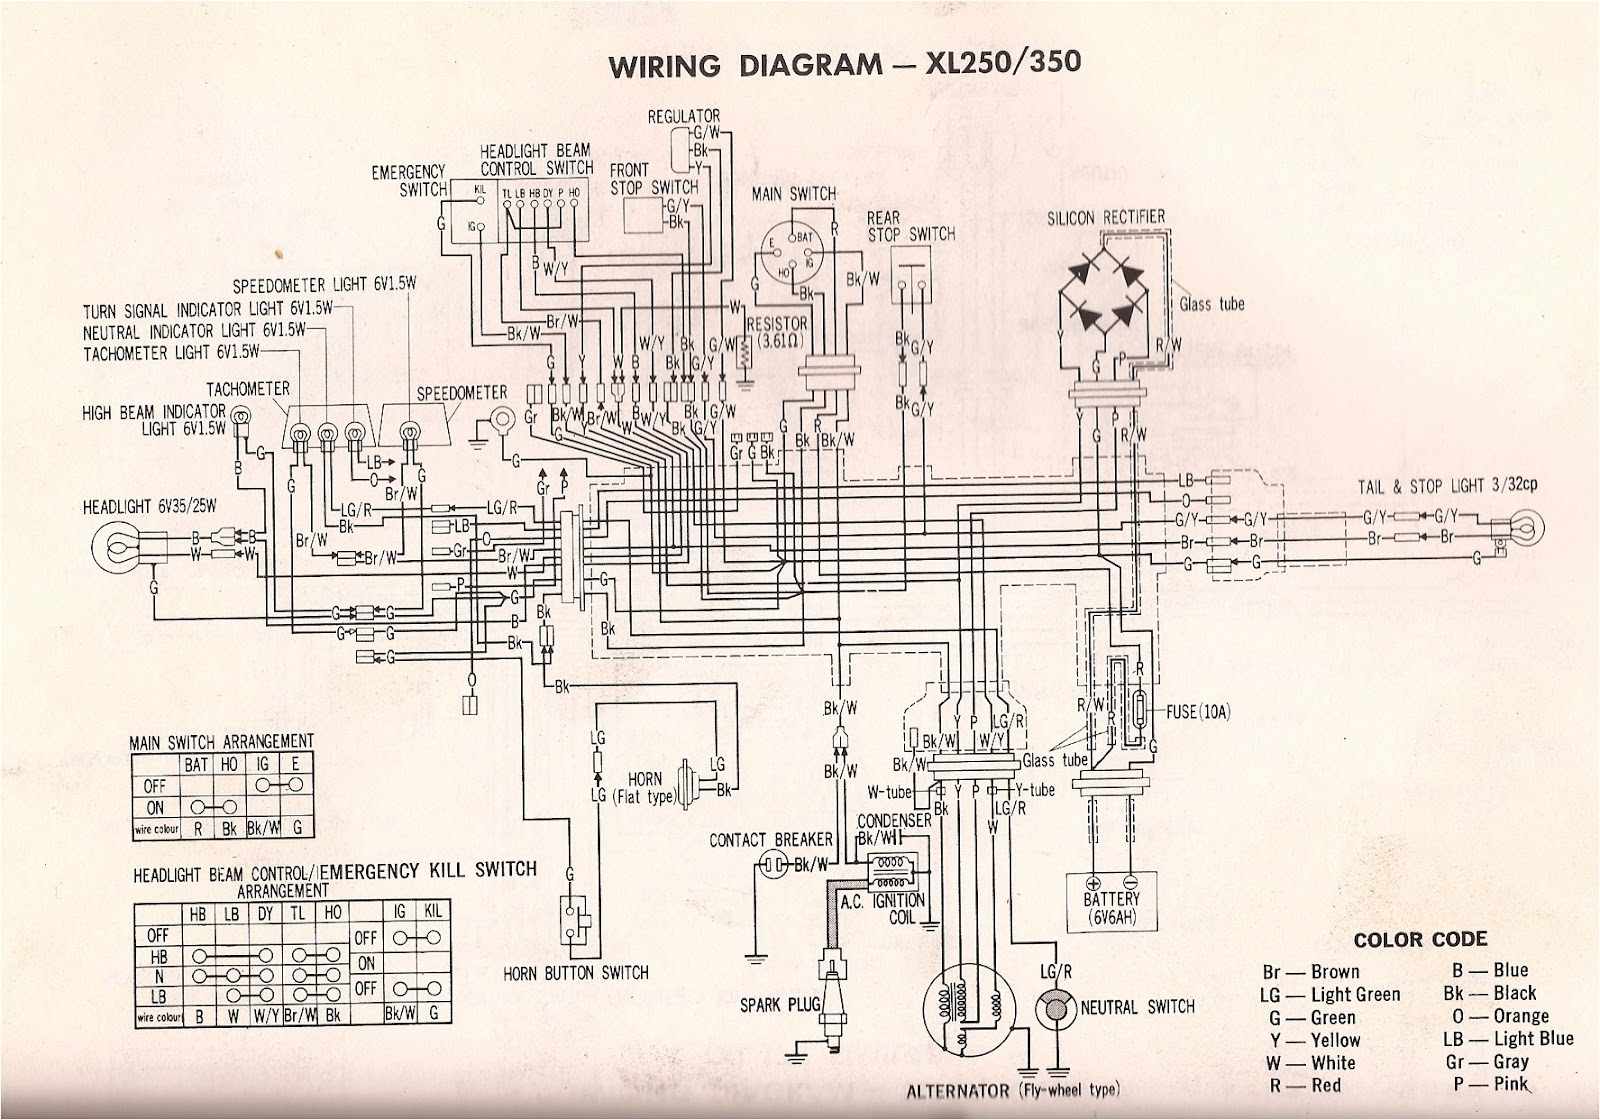 Honda Gx610 Wiring Diagram Electrical Diagrams Fulham Workhorse Electronic Ballast Www Topsimages Com Electric Schematic